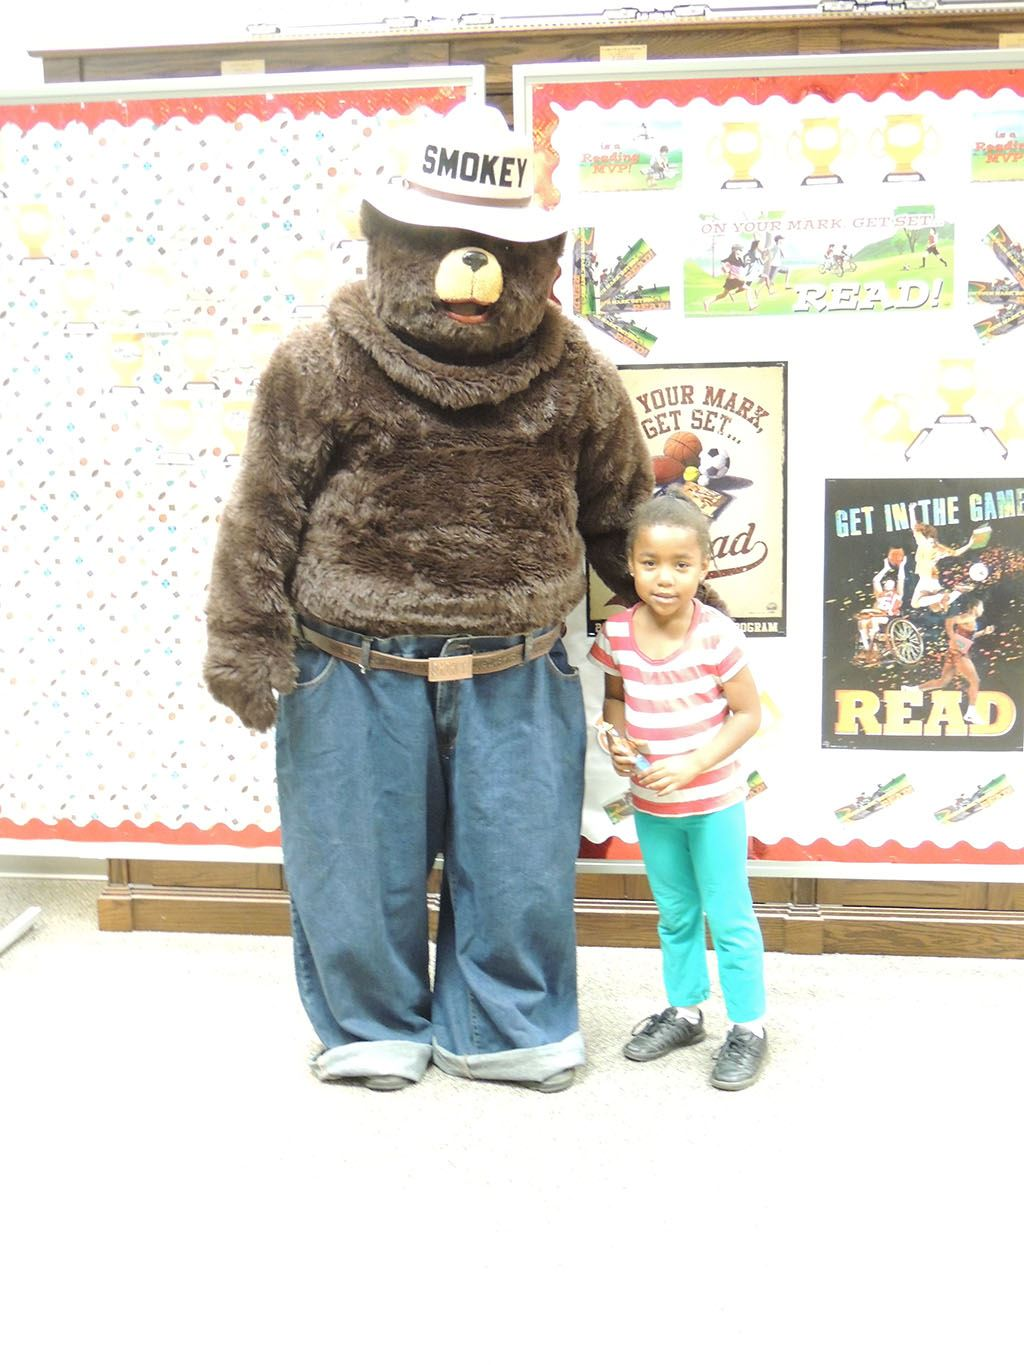 Smokey the Bear with girl